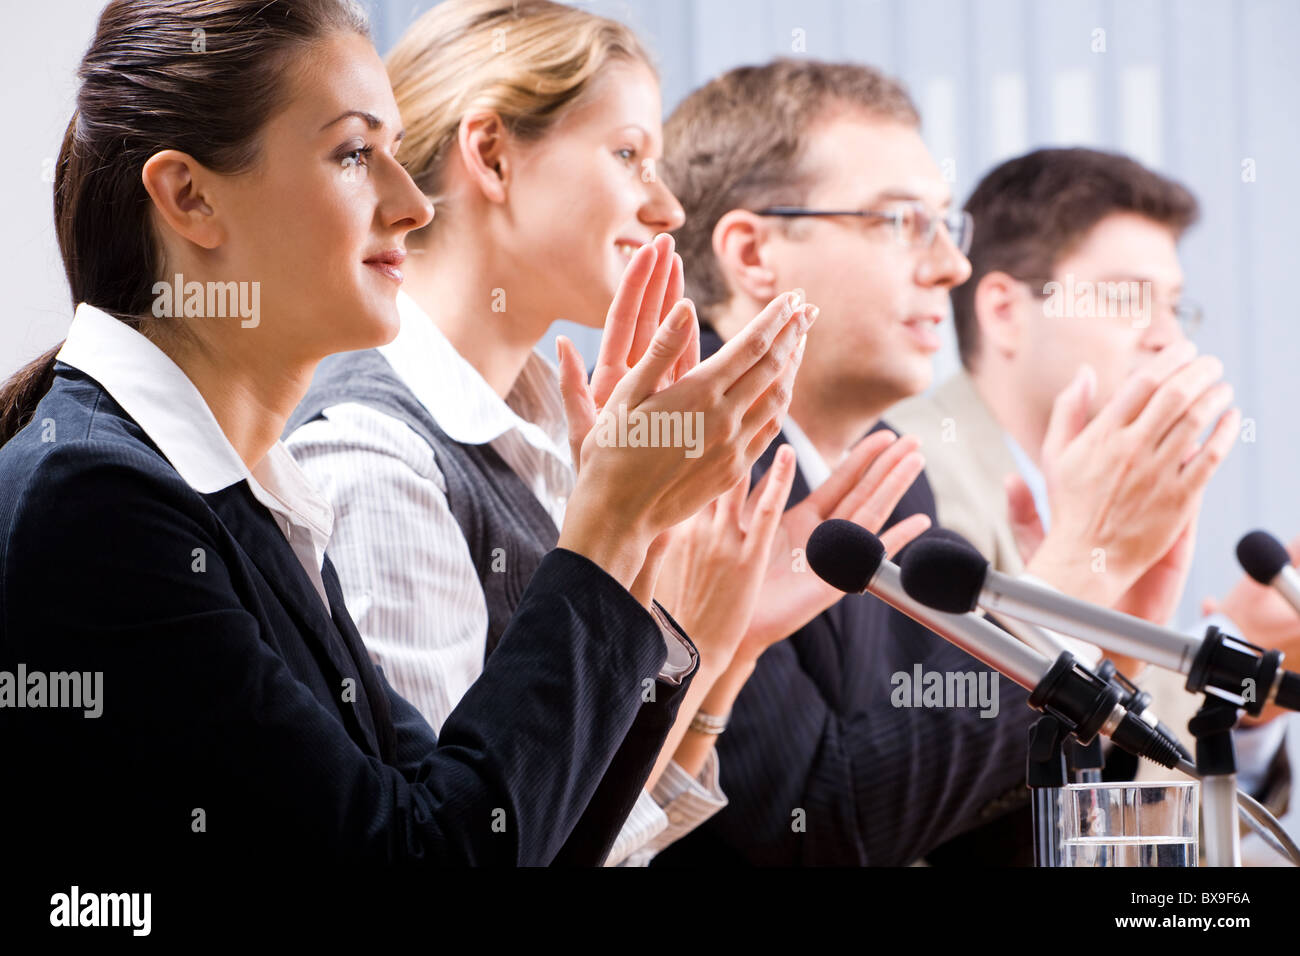 Portrait of several confident people clapping their hands - Stock Image